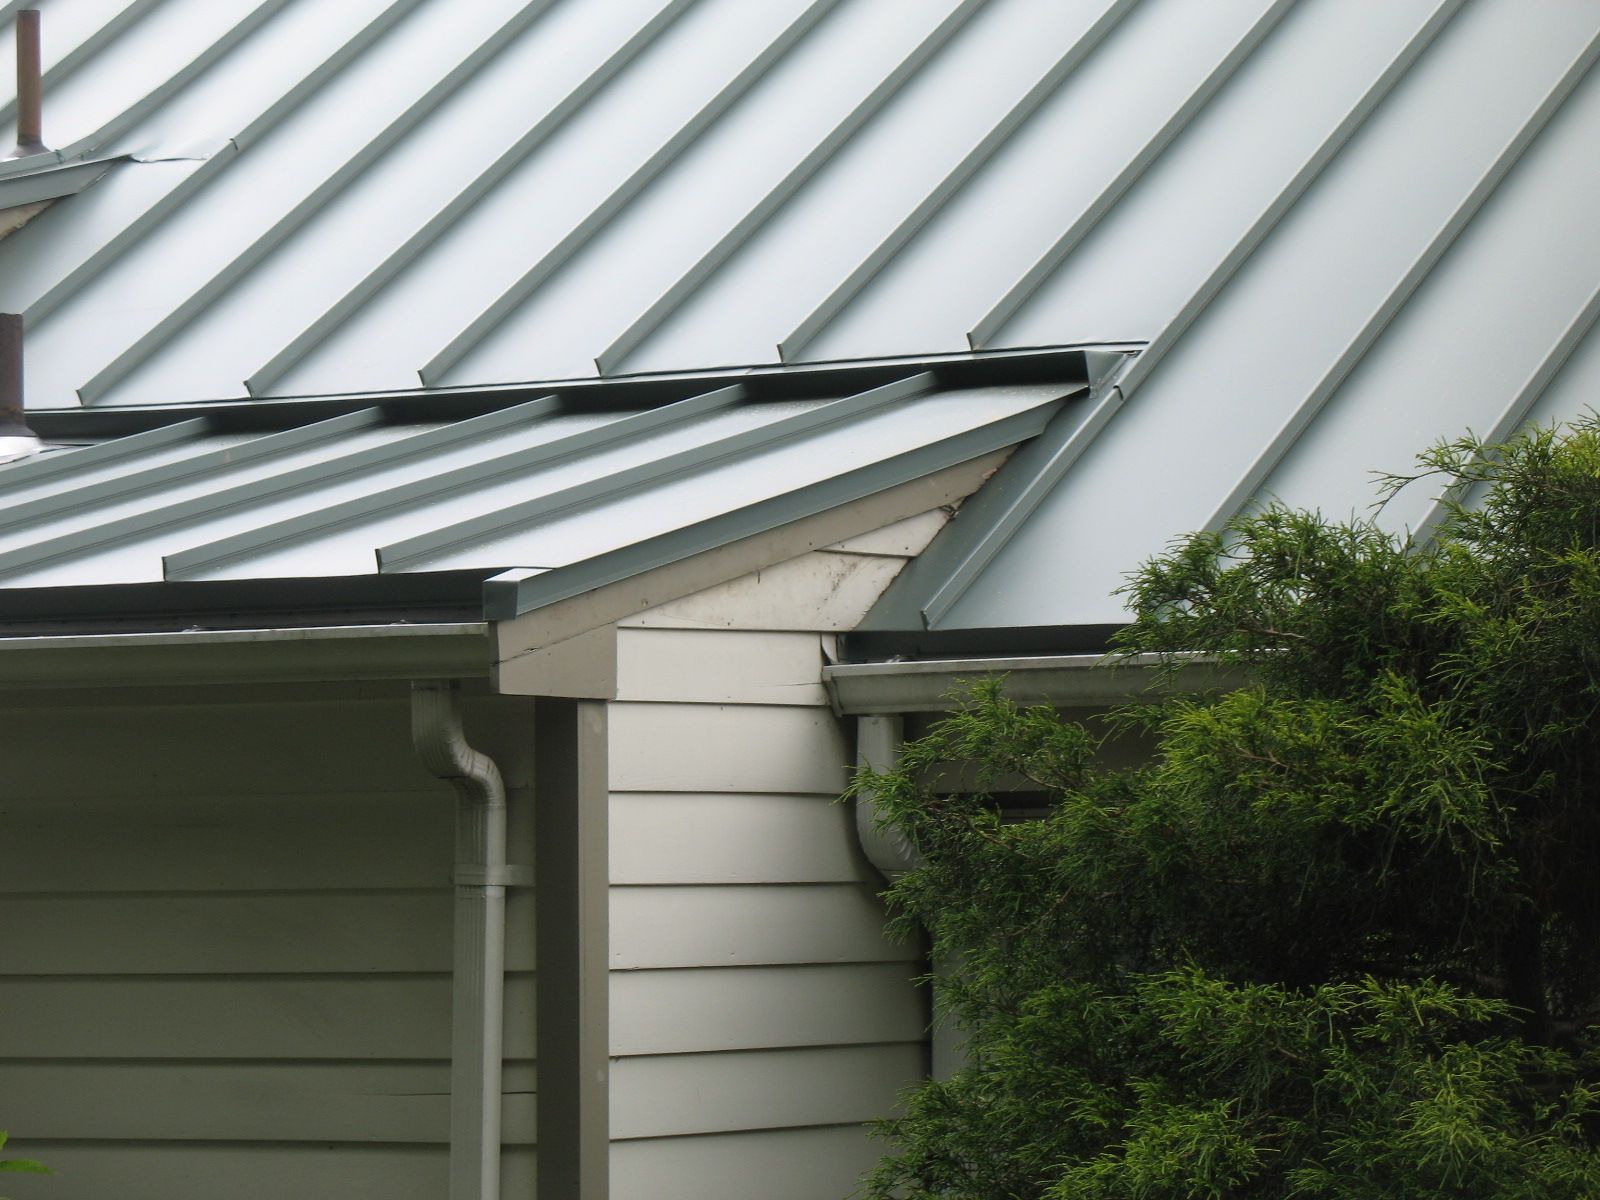 Standing Seam Classic Metal Roofs Llc Stow Ma Standing Seam Standing Seam Metal Roof Aluminum Roof